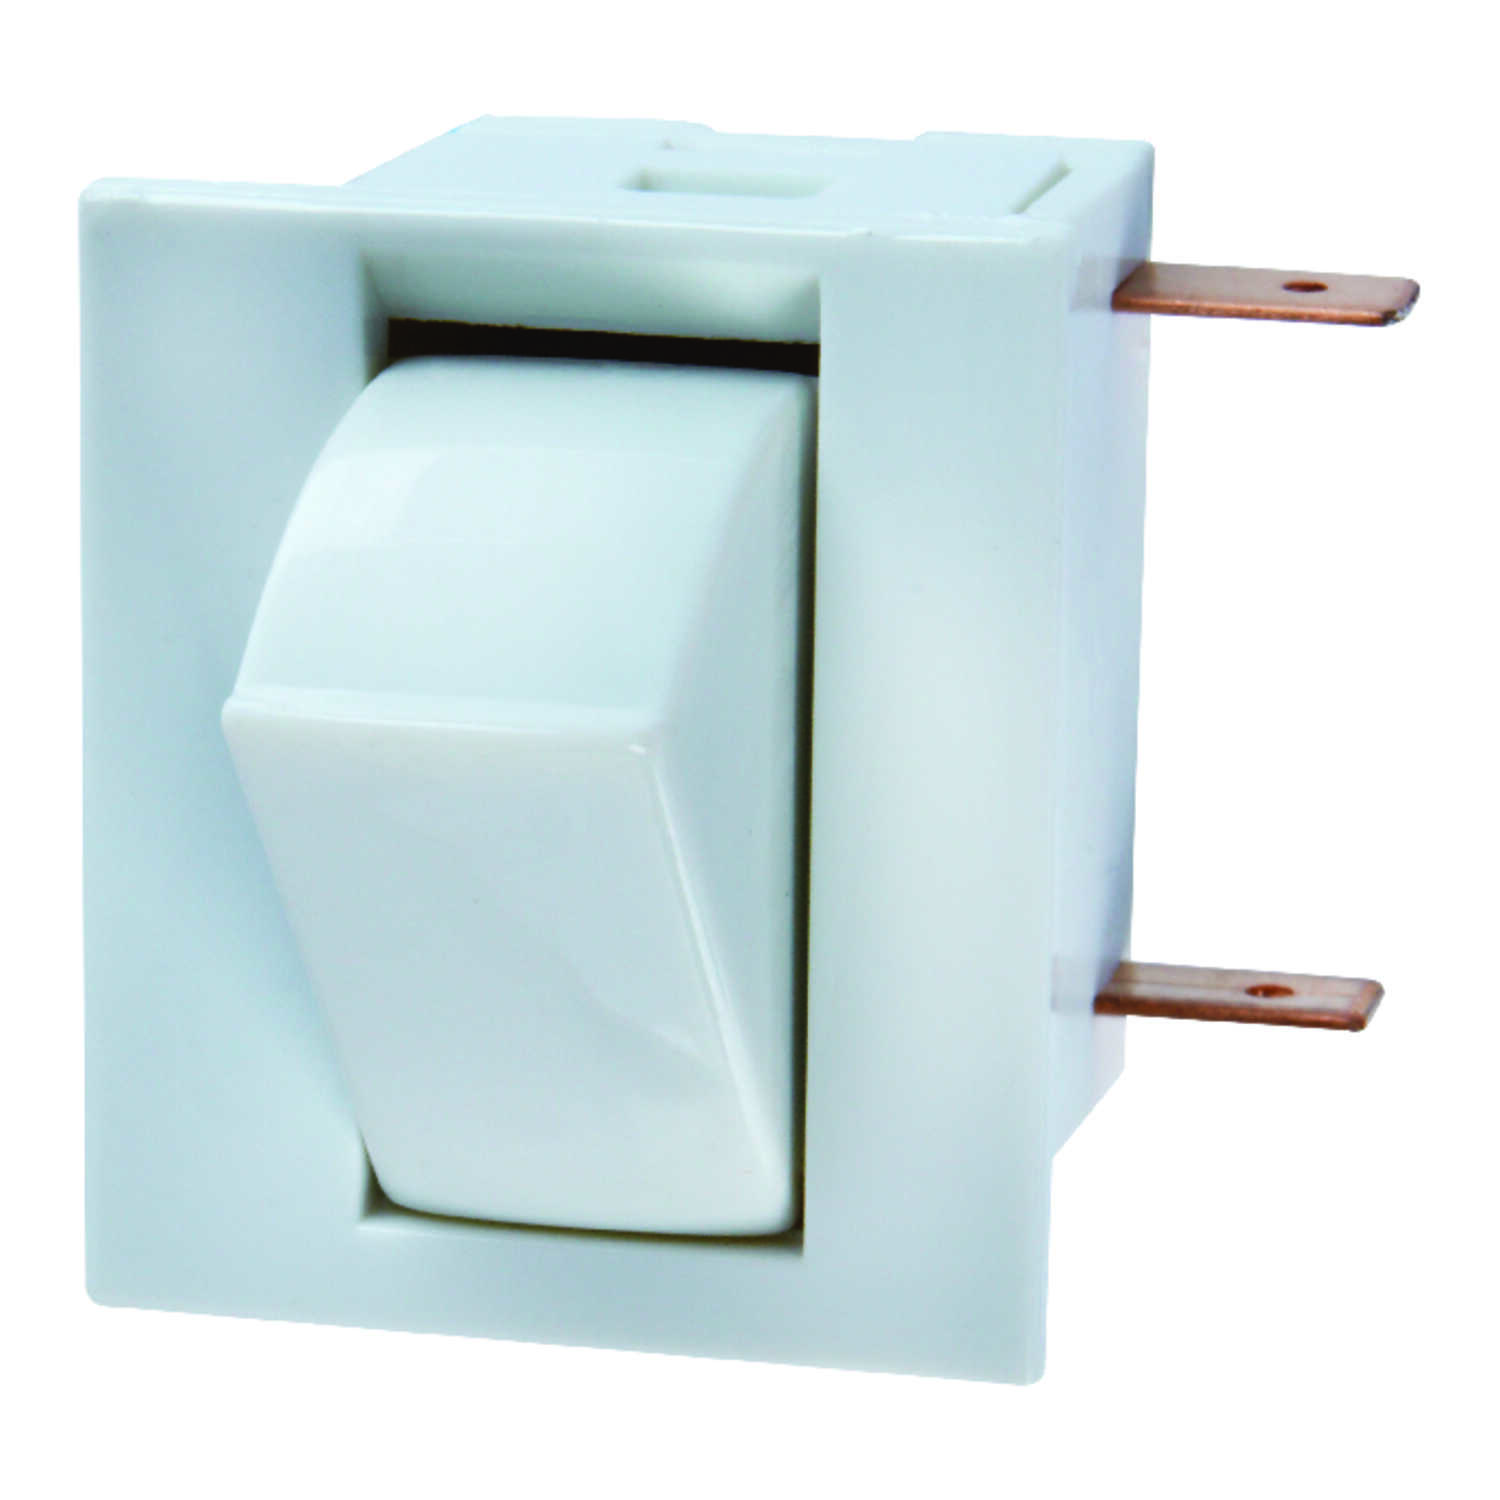 Jandorf  5 amps Single Pole  Momentary  Appliance Switch  White  1